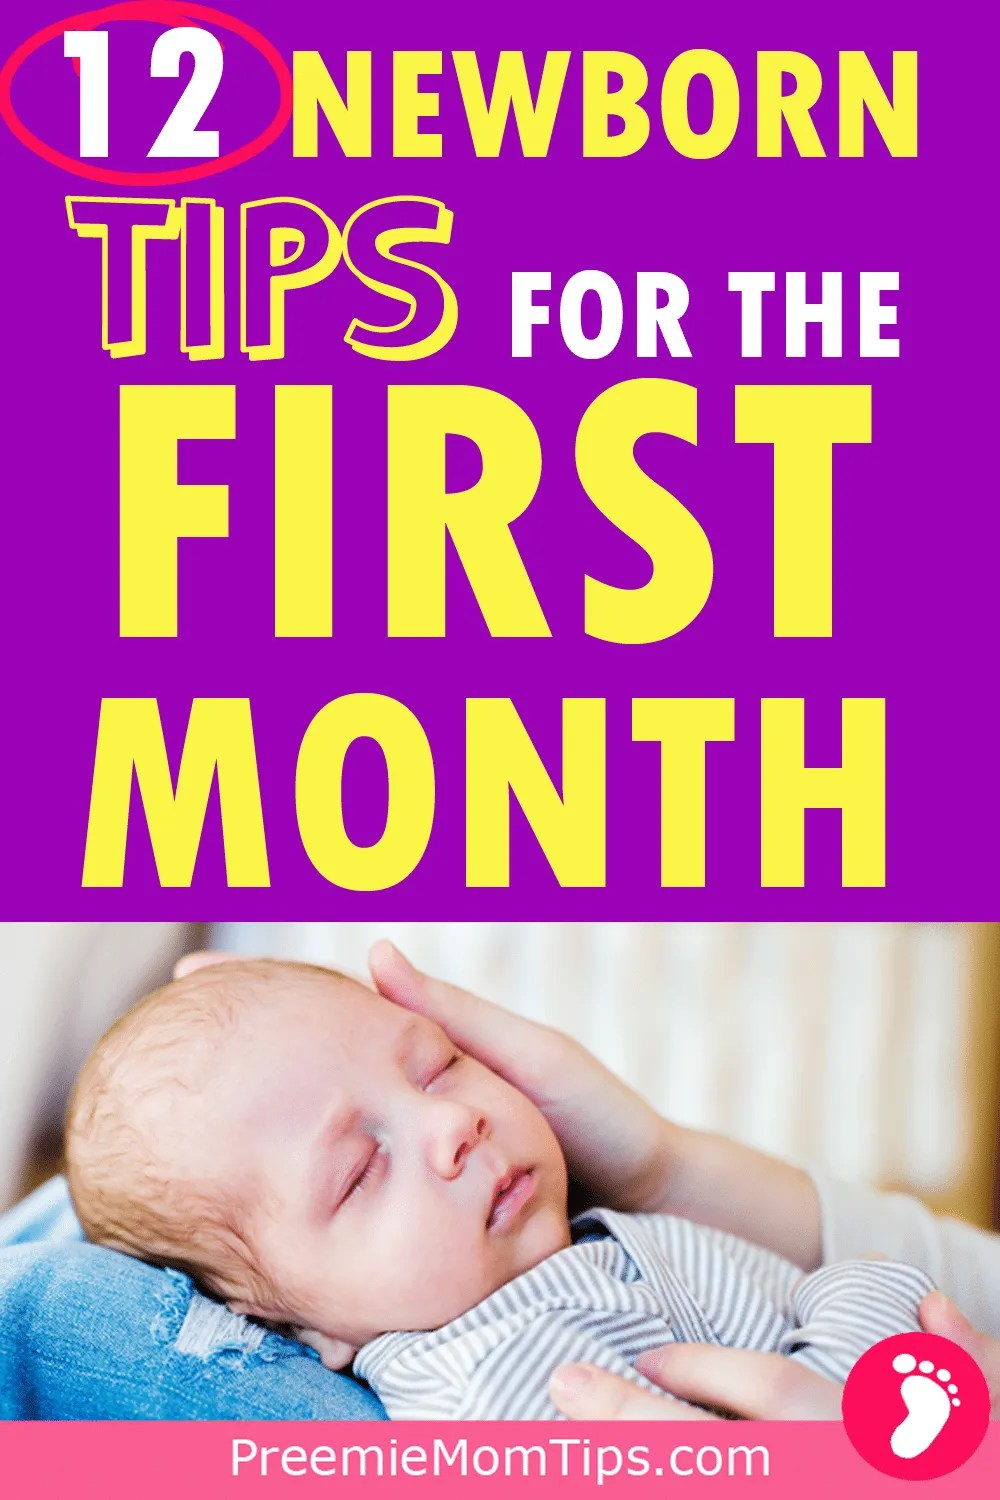 Here are 12 essential newborn baby tips for your first month home as a first time mom